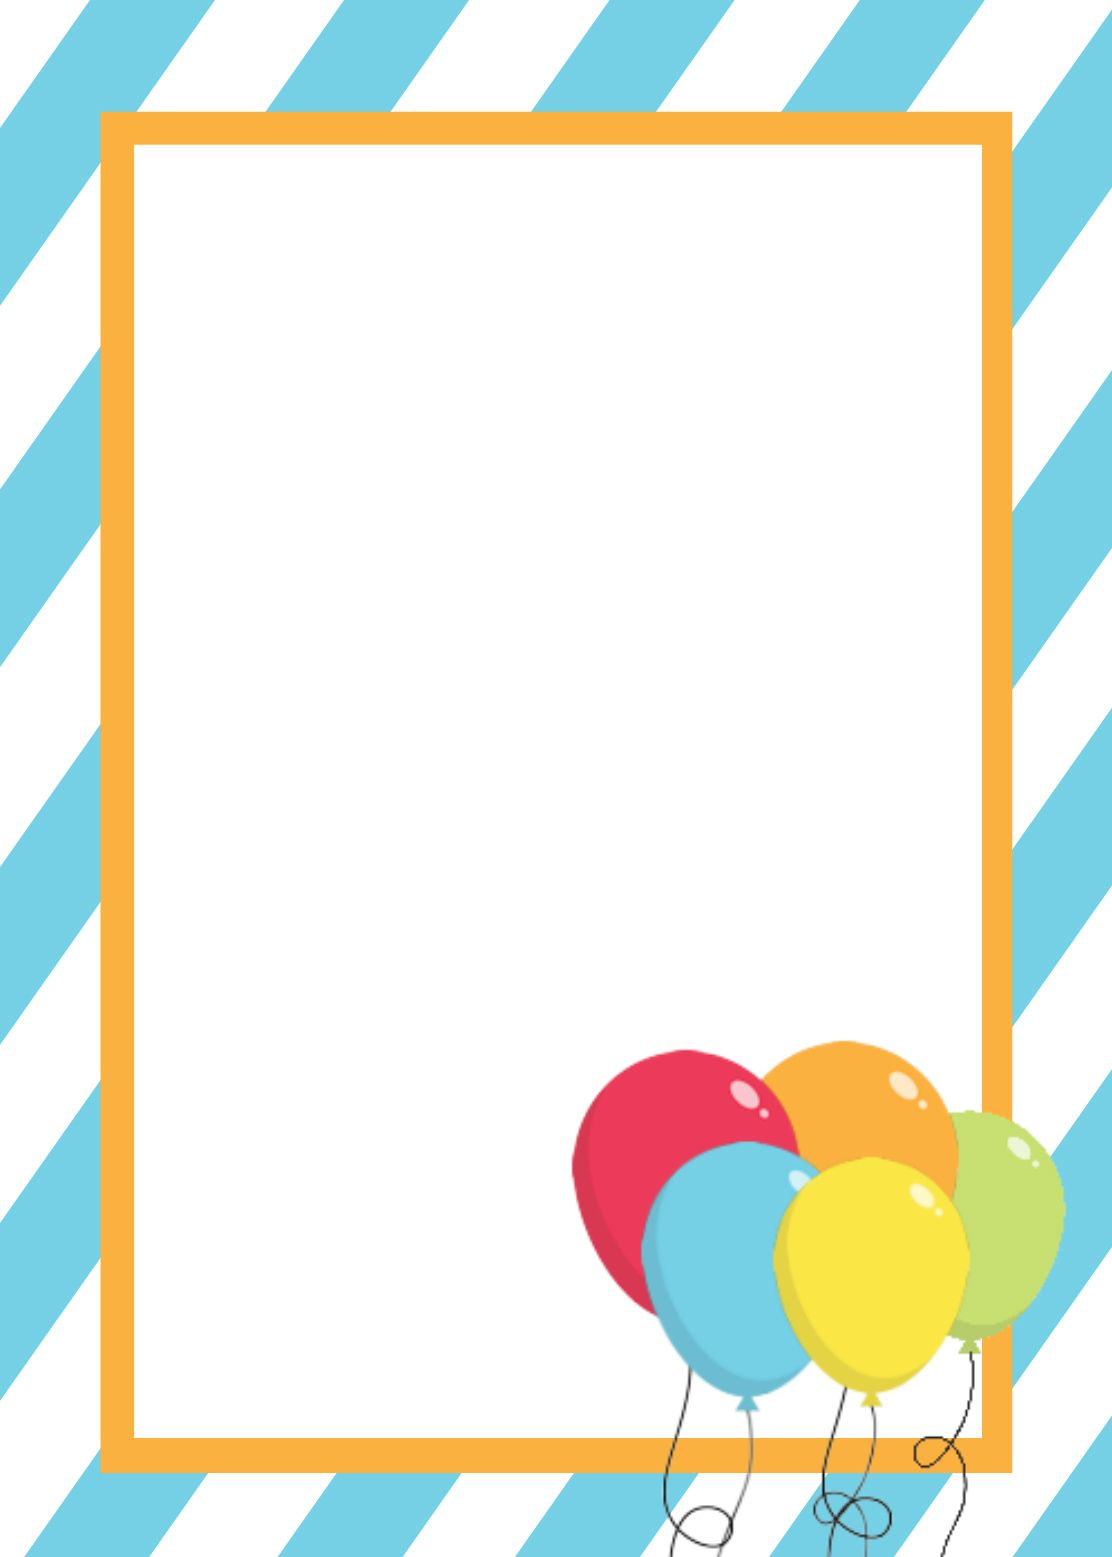 Free Printable Birthday Invitation Templates | Pinterest | Birthday ...